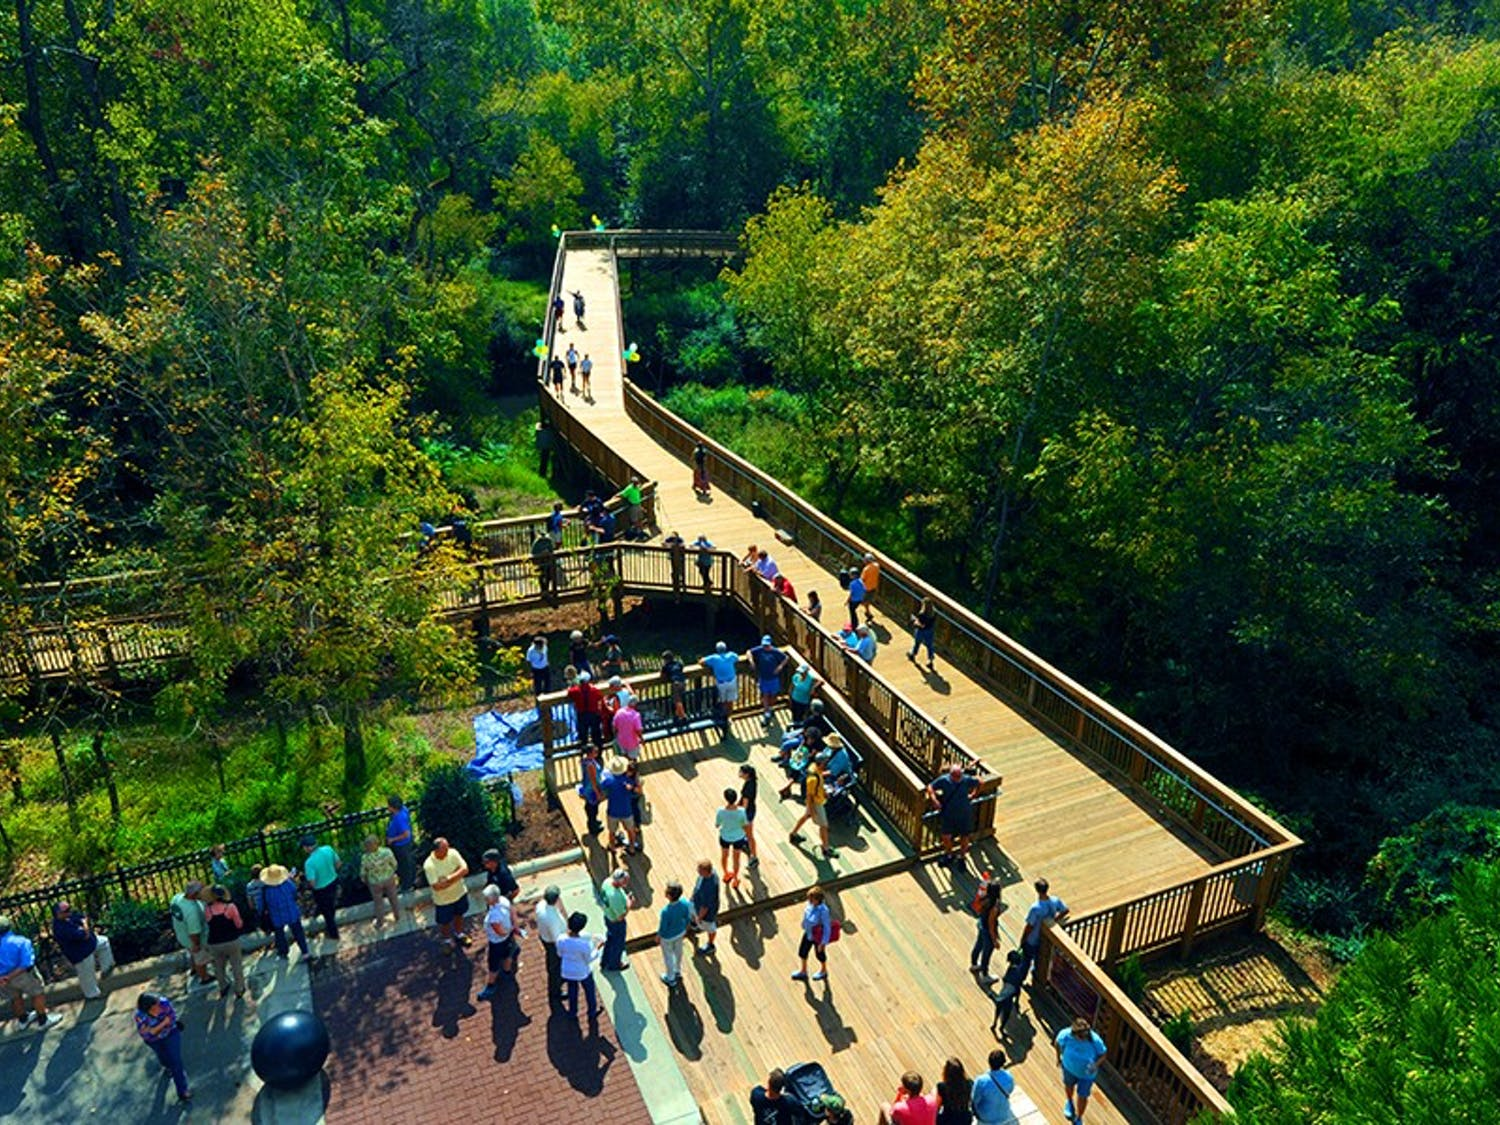 The Riverwalk is just one of Hillsborough's many recreational outdoor spaces. Now, Hillsborough is seeking input from teenage community members on their Parks and Recreation Board.